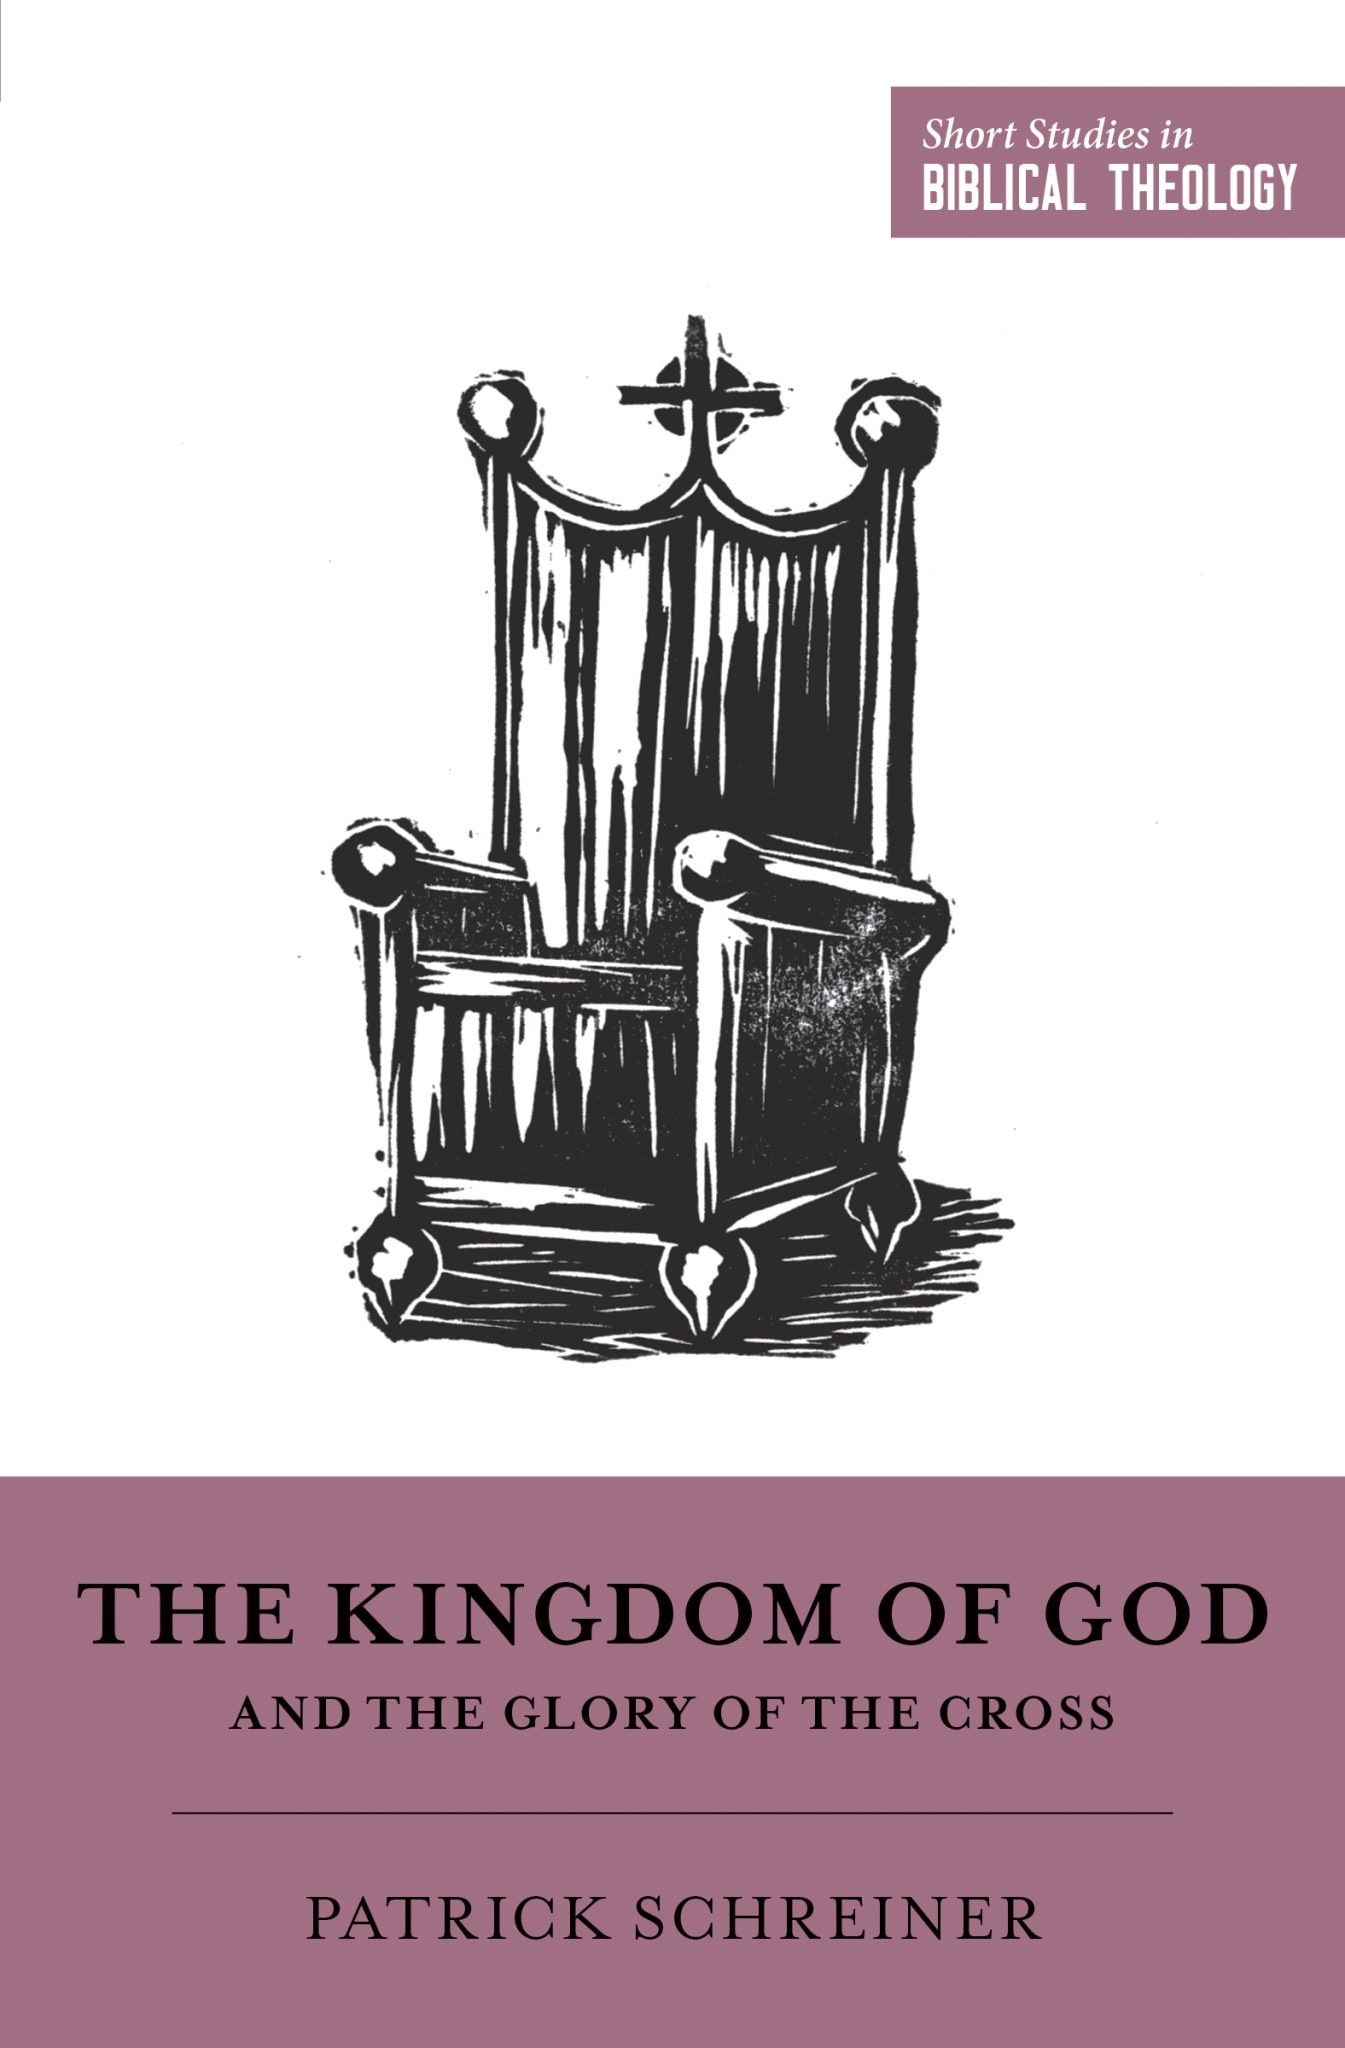 a superb (and short) new book on the kingdom of god